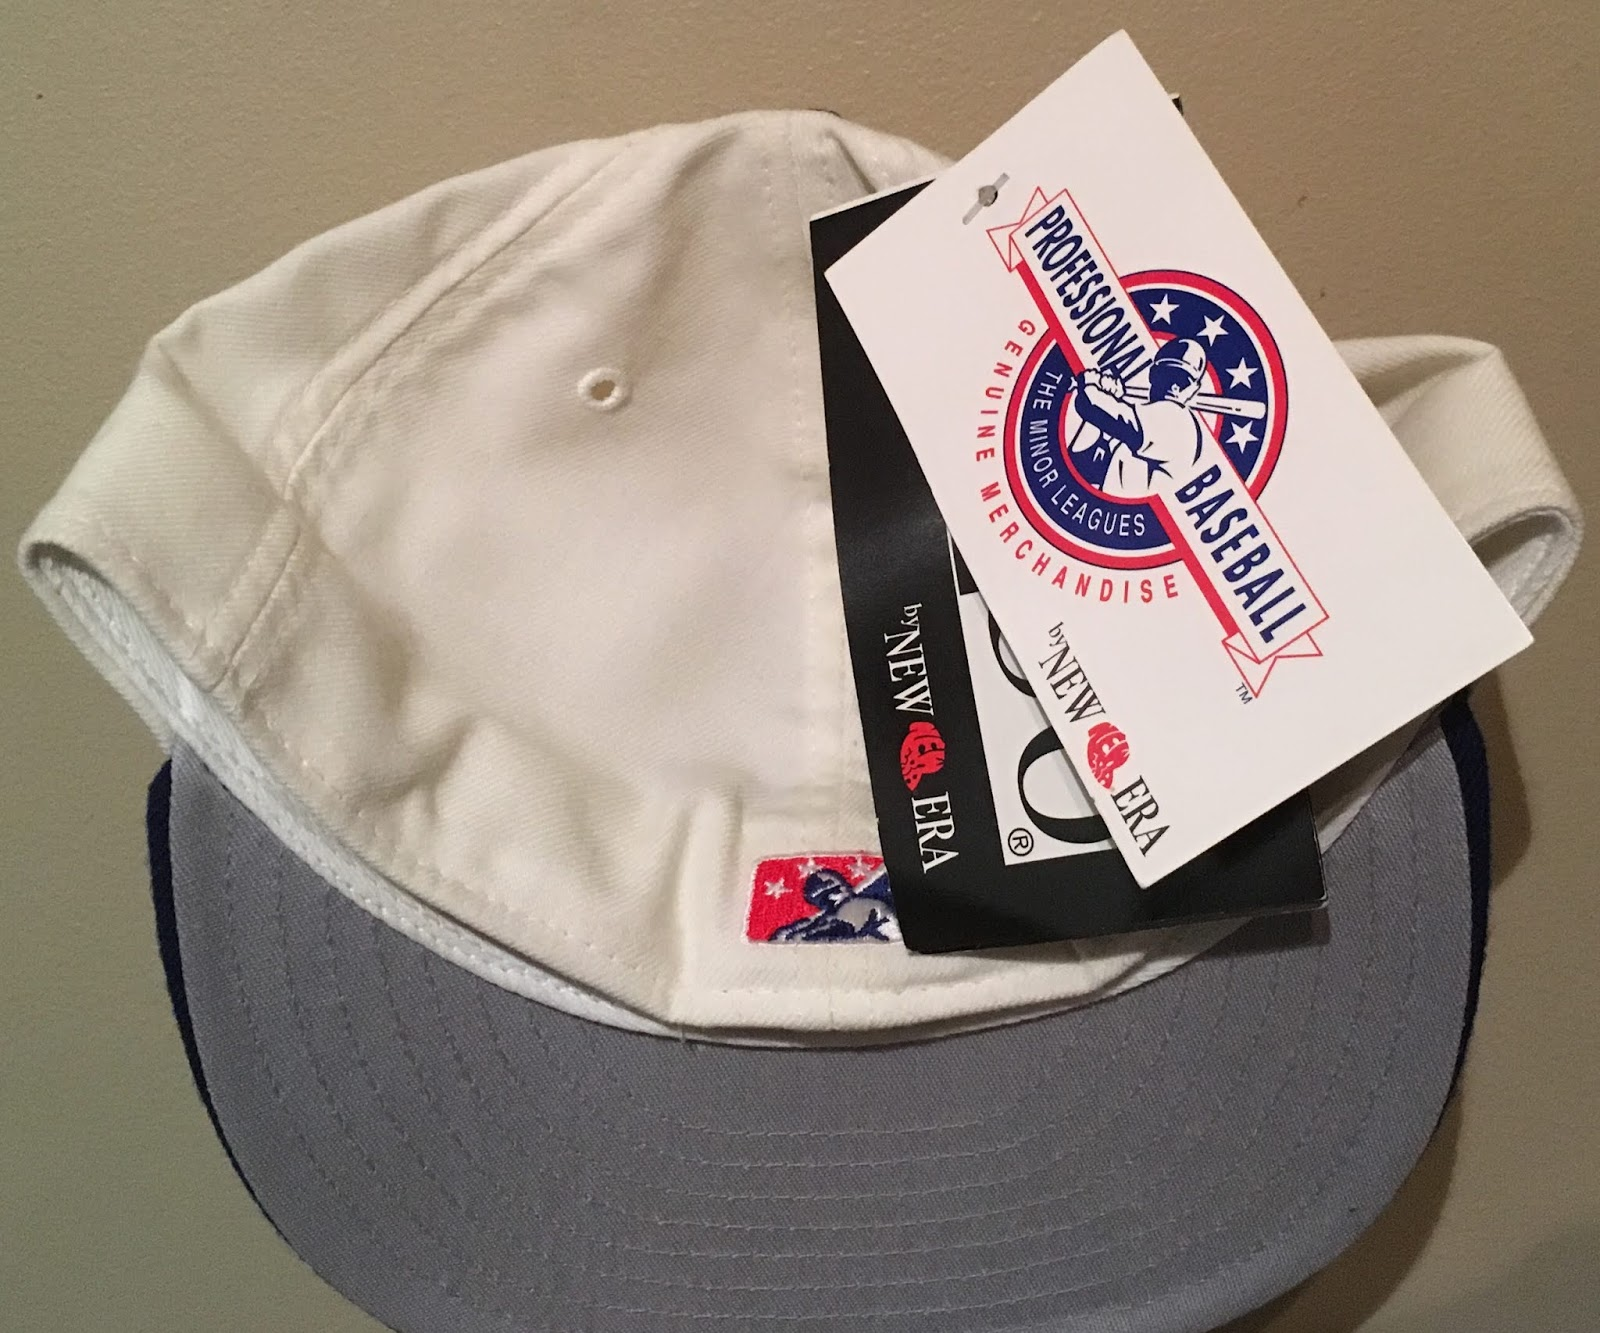 877acf7651b2f The MILB batterman here tells me this cap has to be from 1994 at the  earliest. Also